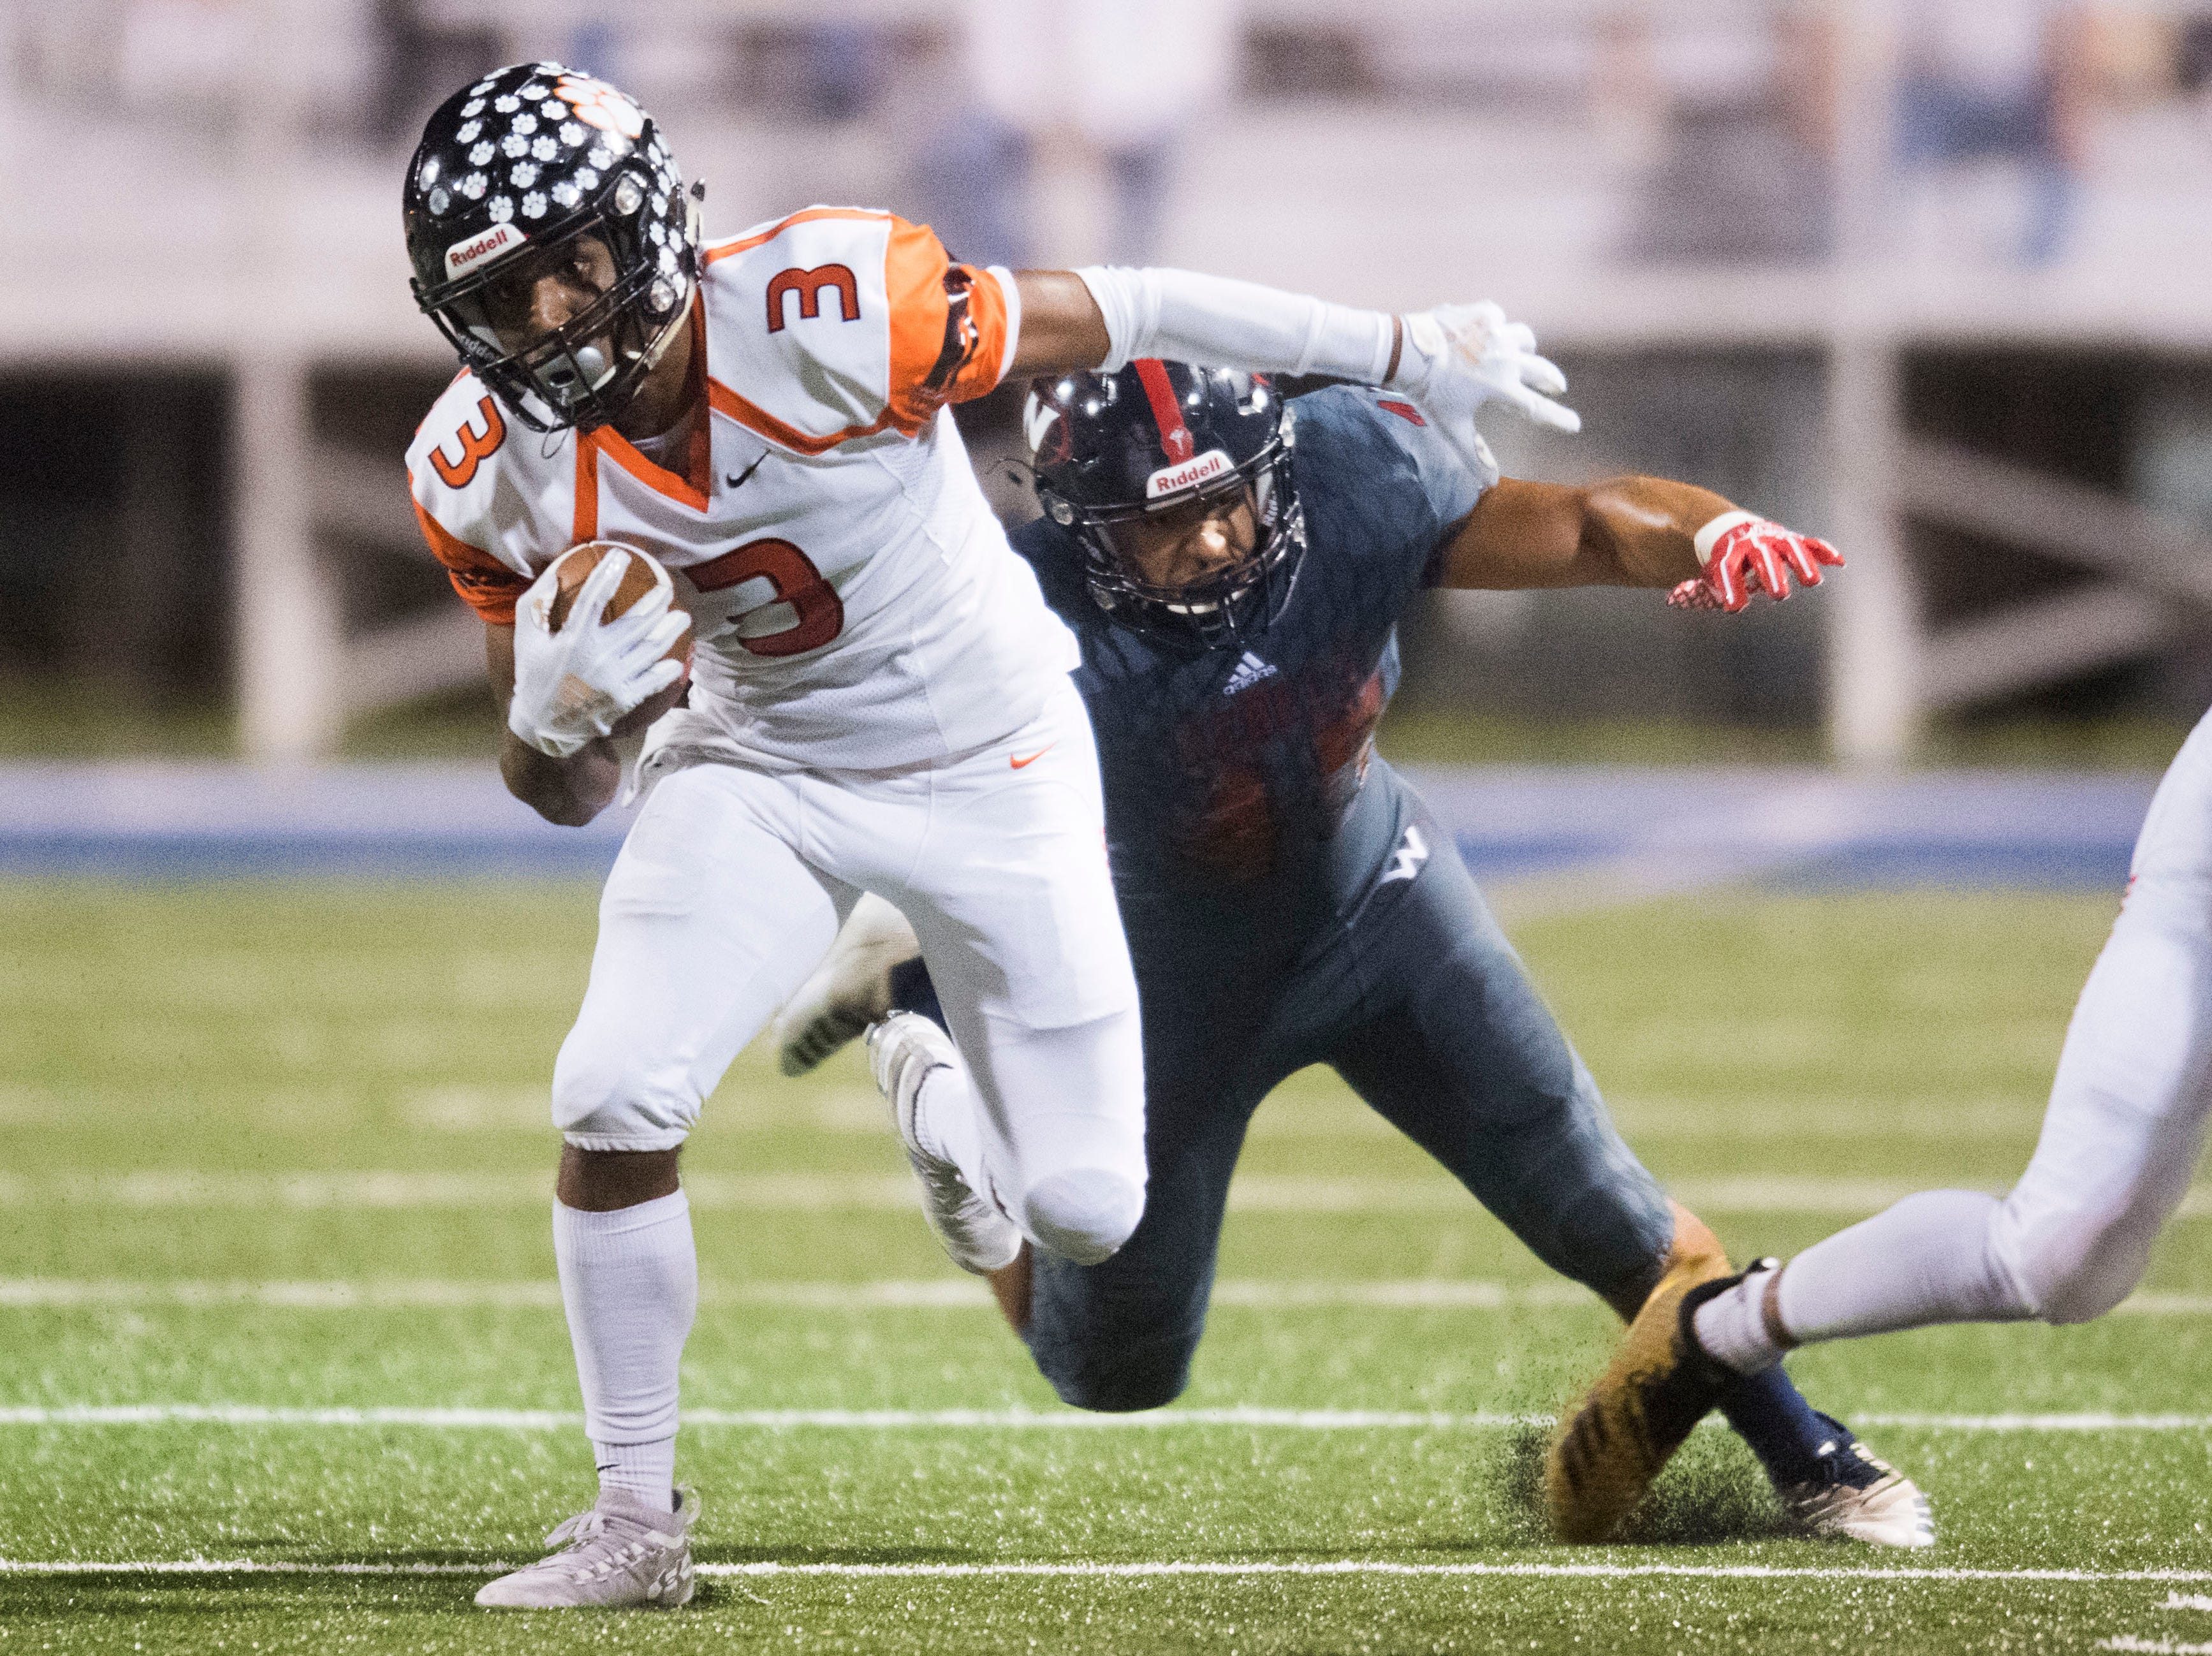 Powell's Bailor Walker (3) runs as West's William Savoy (45) attempts to take hime down during a game between West and Powell at West, Friday, Oct. 5, 2018. Powell defeated West 36-21.